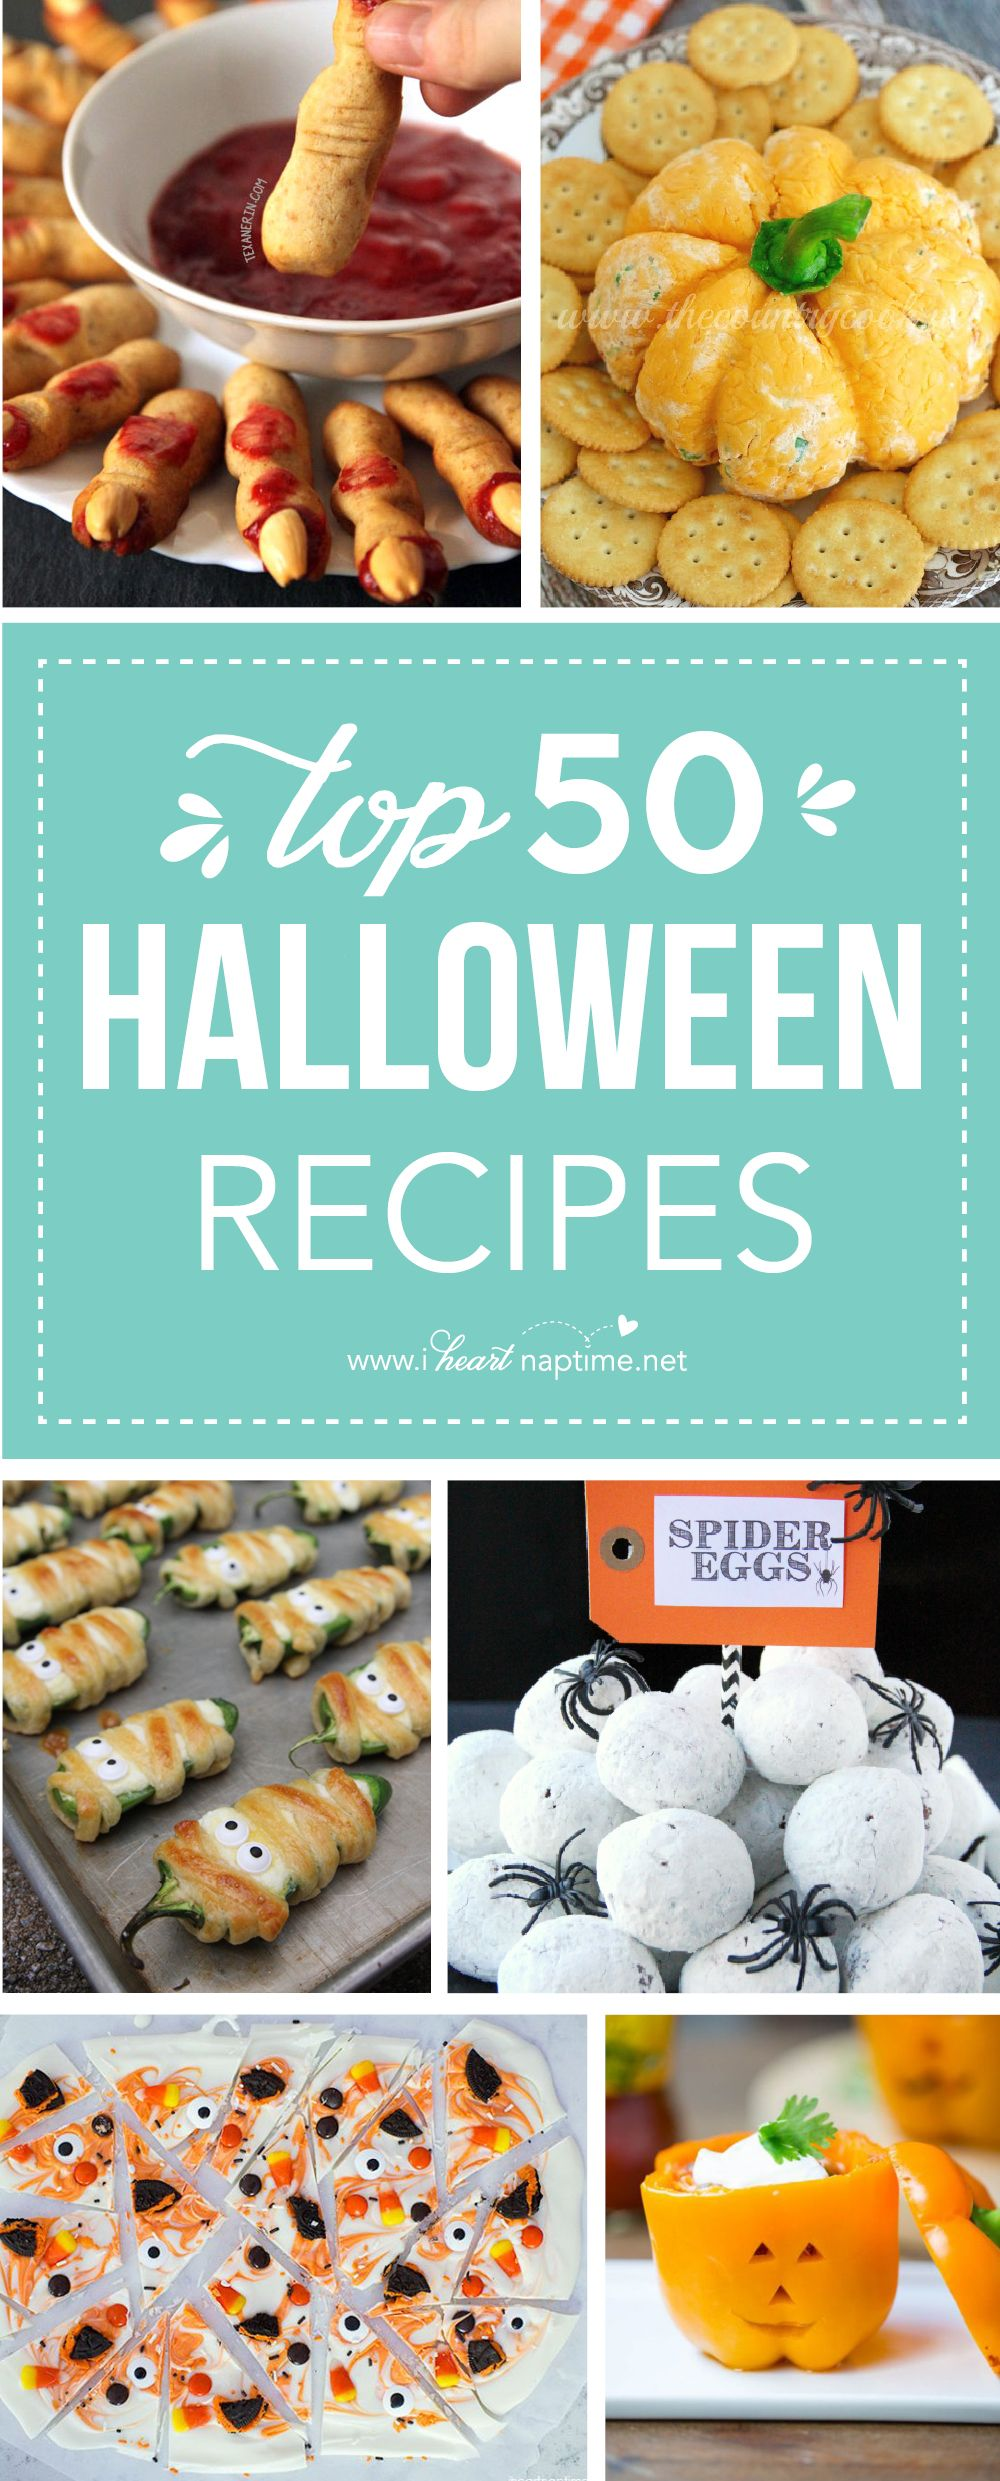 Top 50 Halloween Recipes | Halloween, Dishes and Dips